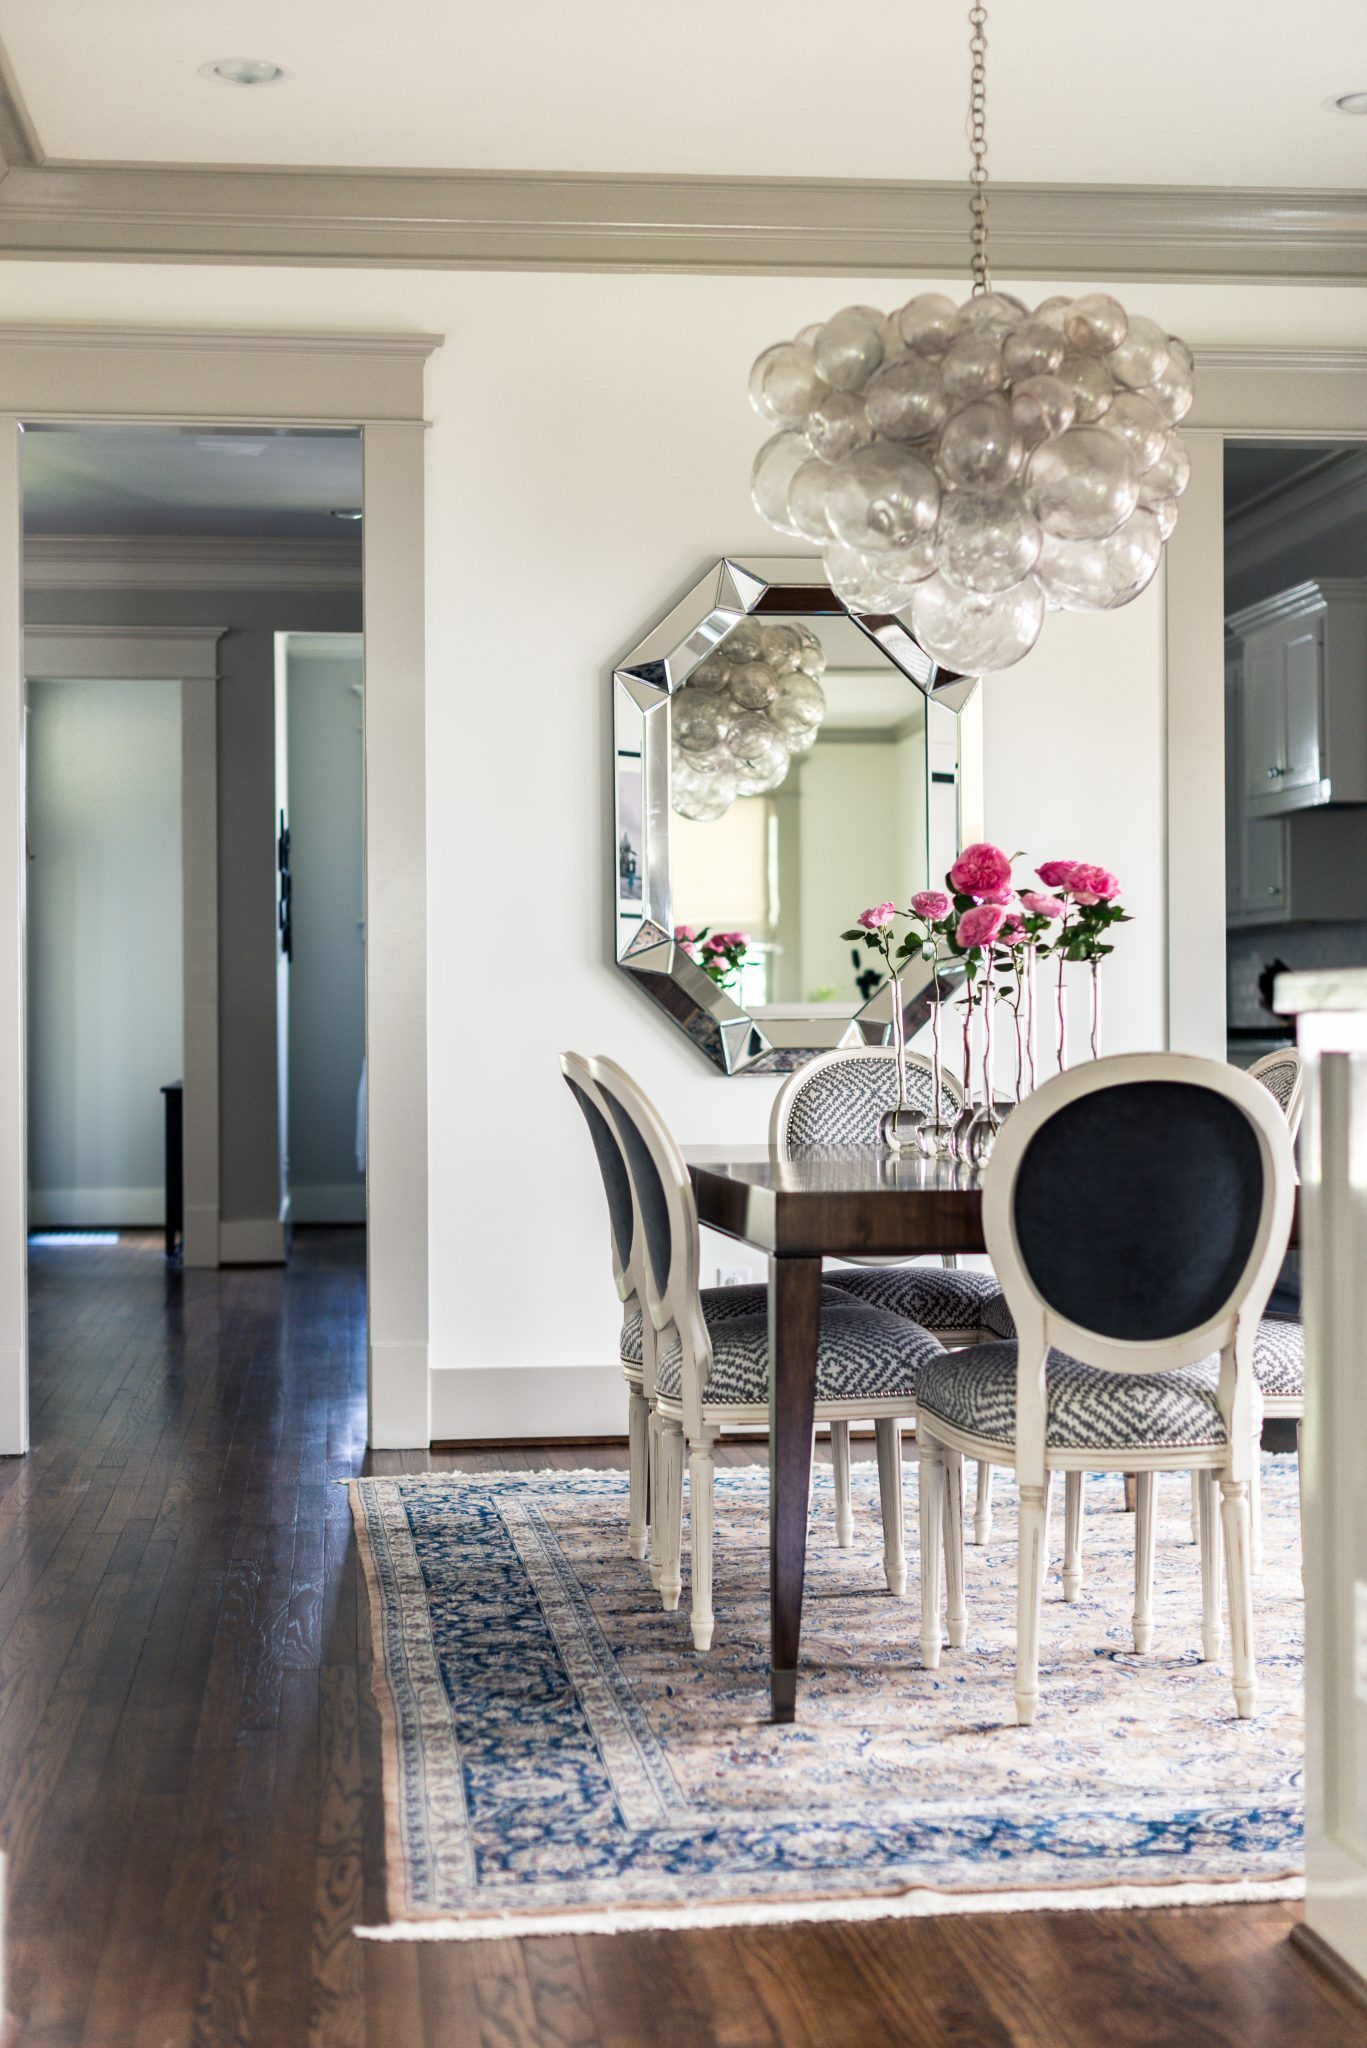 How Amazing Is That Bubble Chandelier We Love The Modern Touch To The Traditional Din Dining Room Chandelier Modern Traditional Chandelier Dining Room Remodel